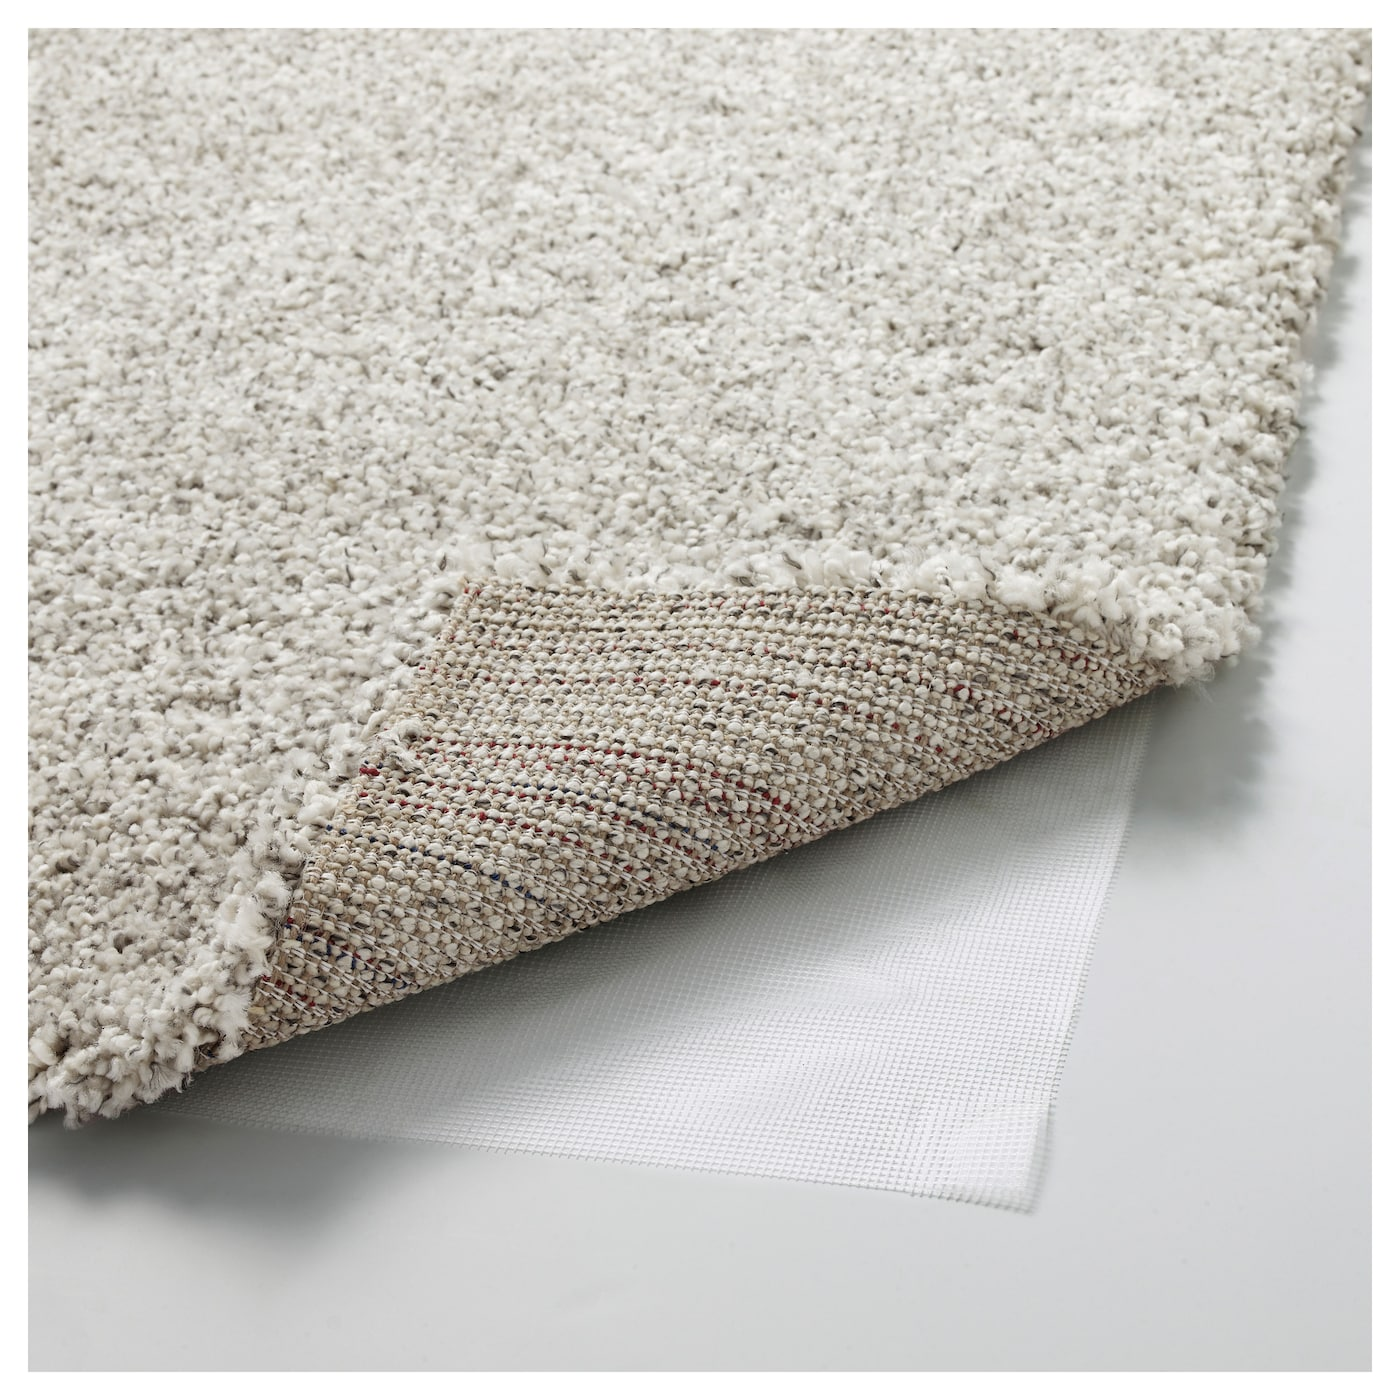 Alhede rug high pile off white 133x195 cm ikea for Ikea rugs